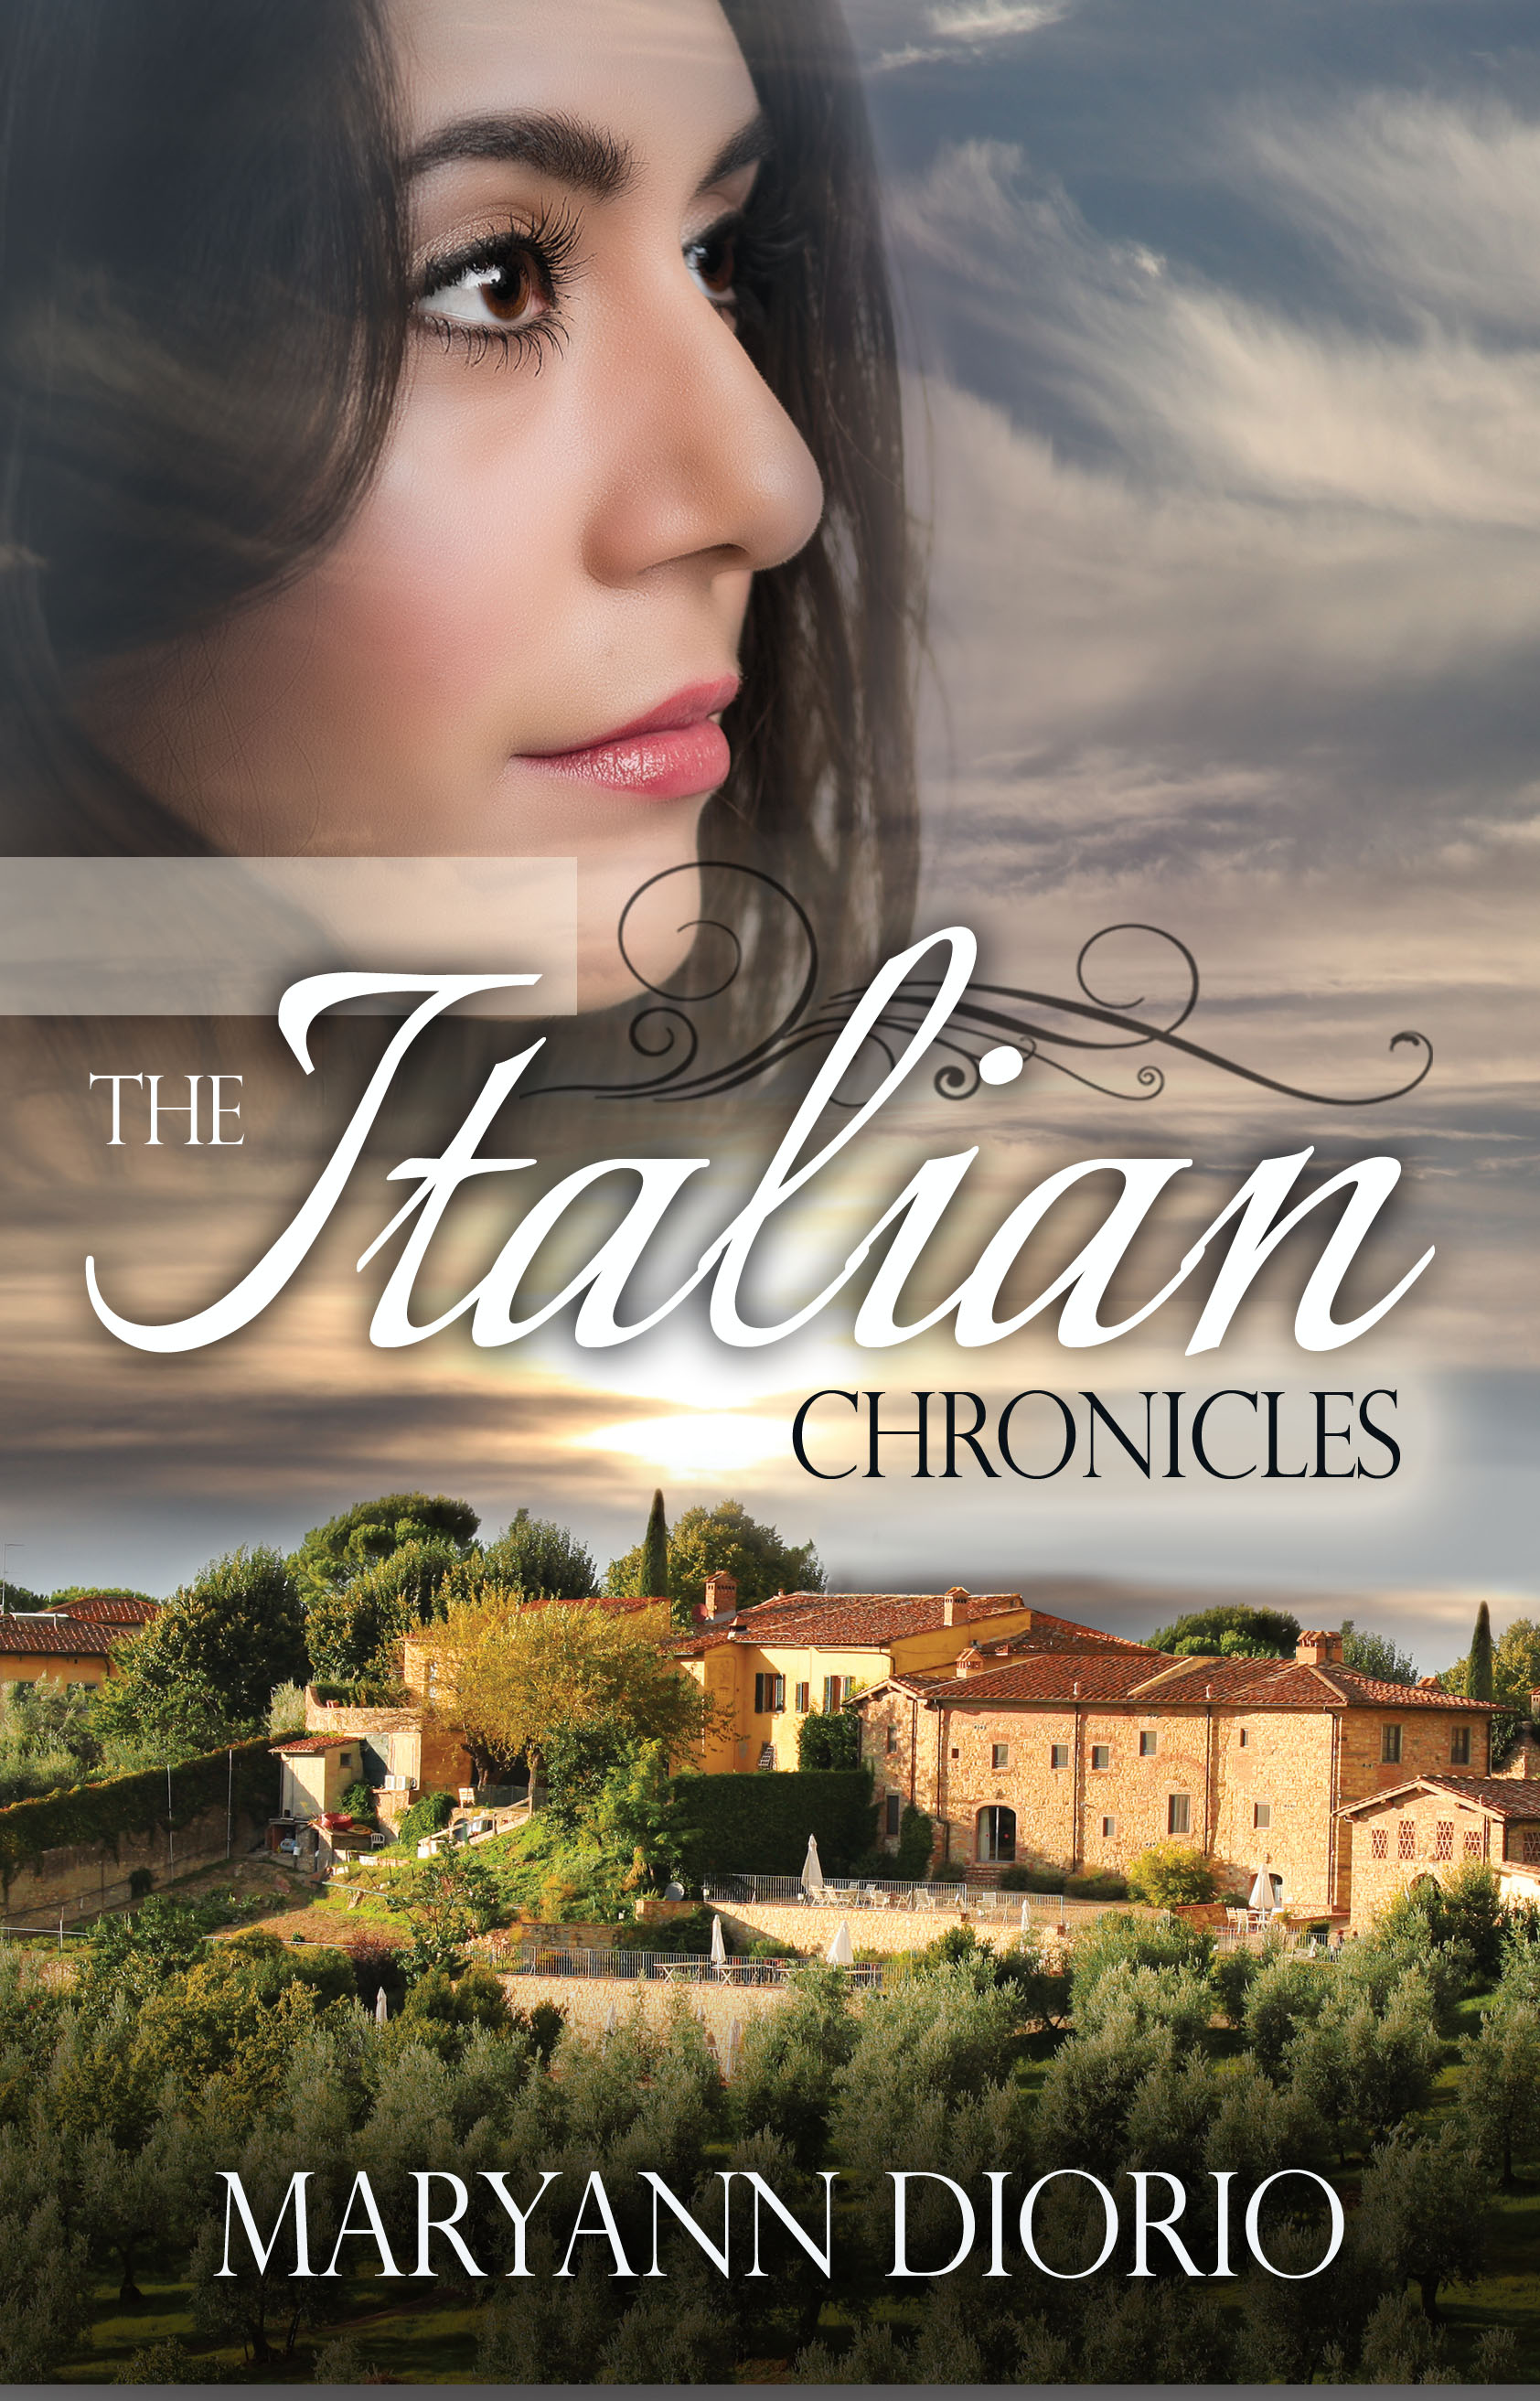 The Italian Chronicles: The Complete Trilogy of Novels